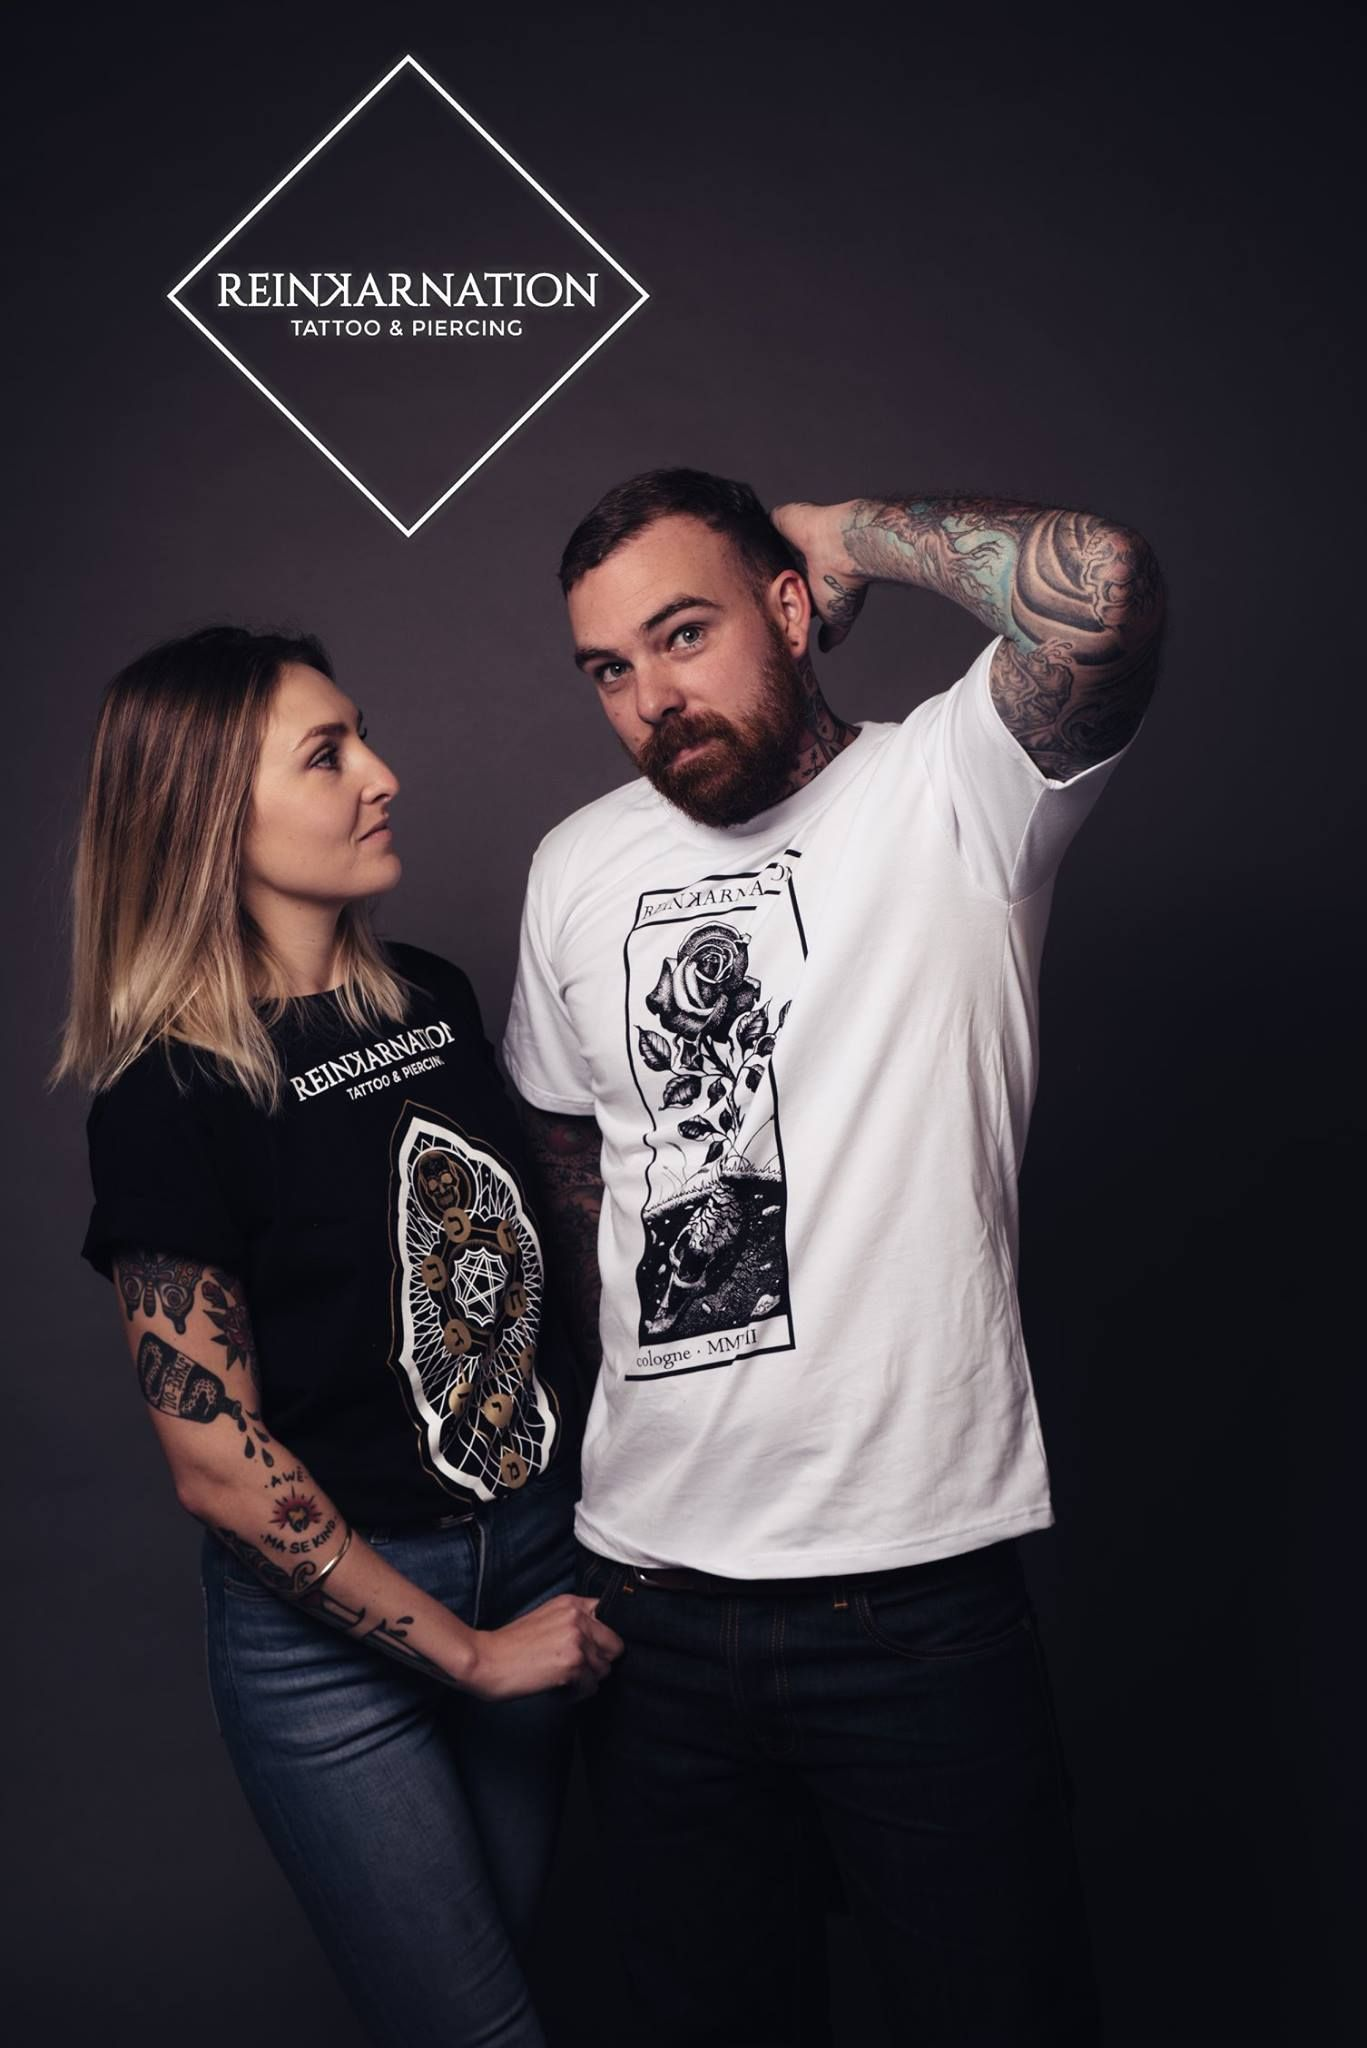 Shirtdesign by Cigla   reinkarnationtattoos tattoos shirt design skull artwork model